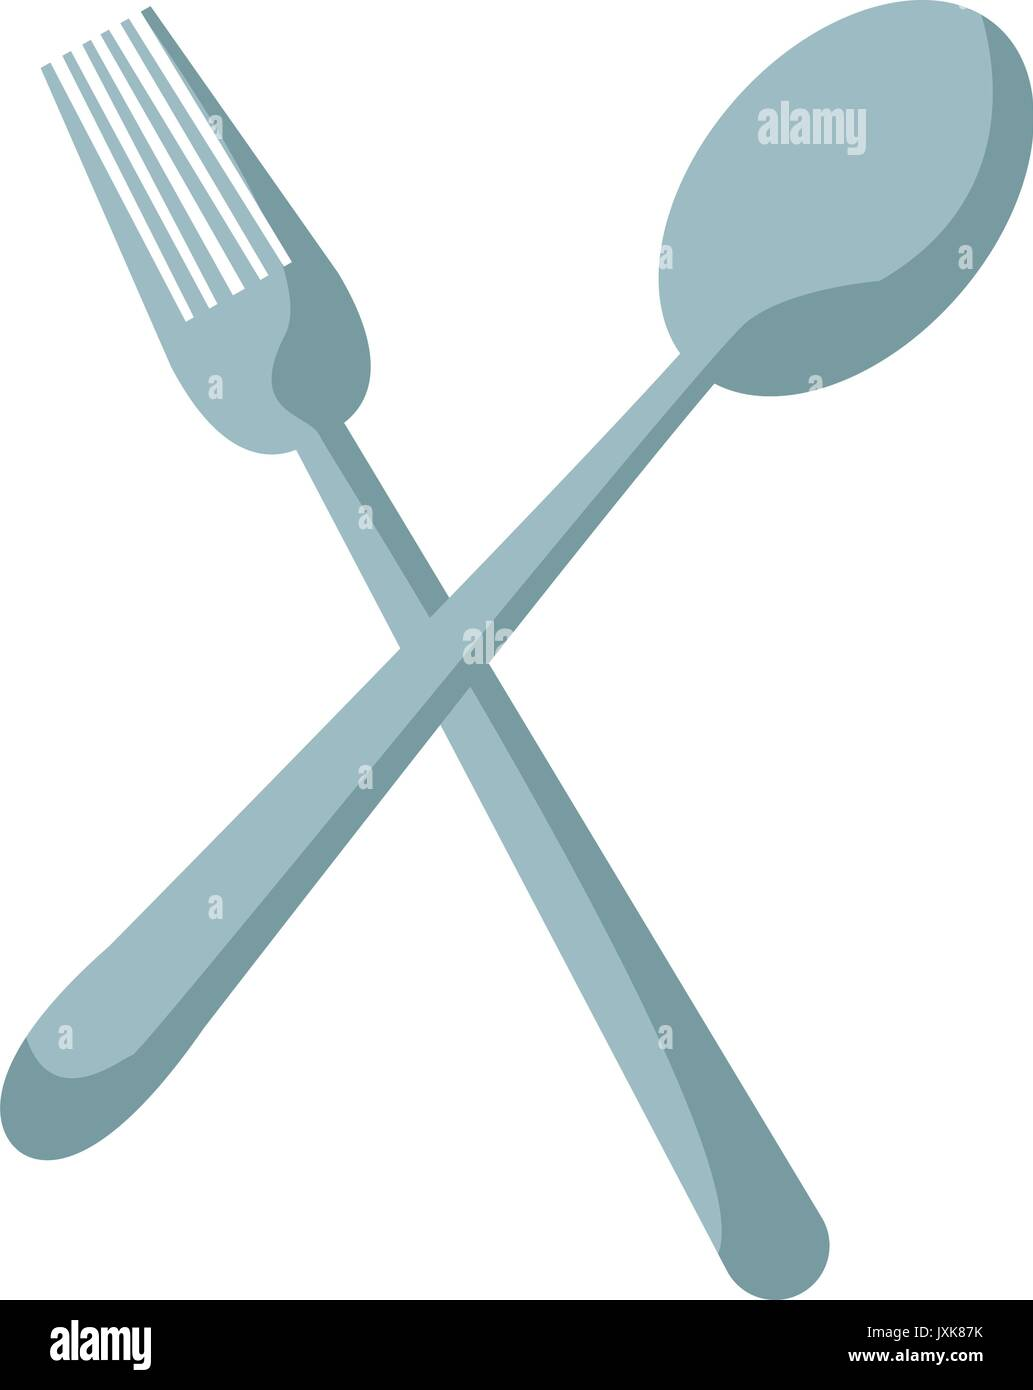 crossed spoon and fork tool cooking kitchen icon Stock Vector Art ...